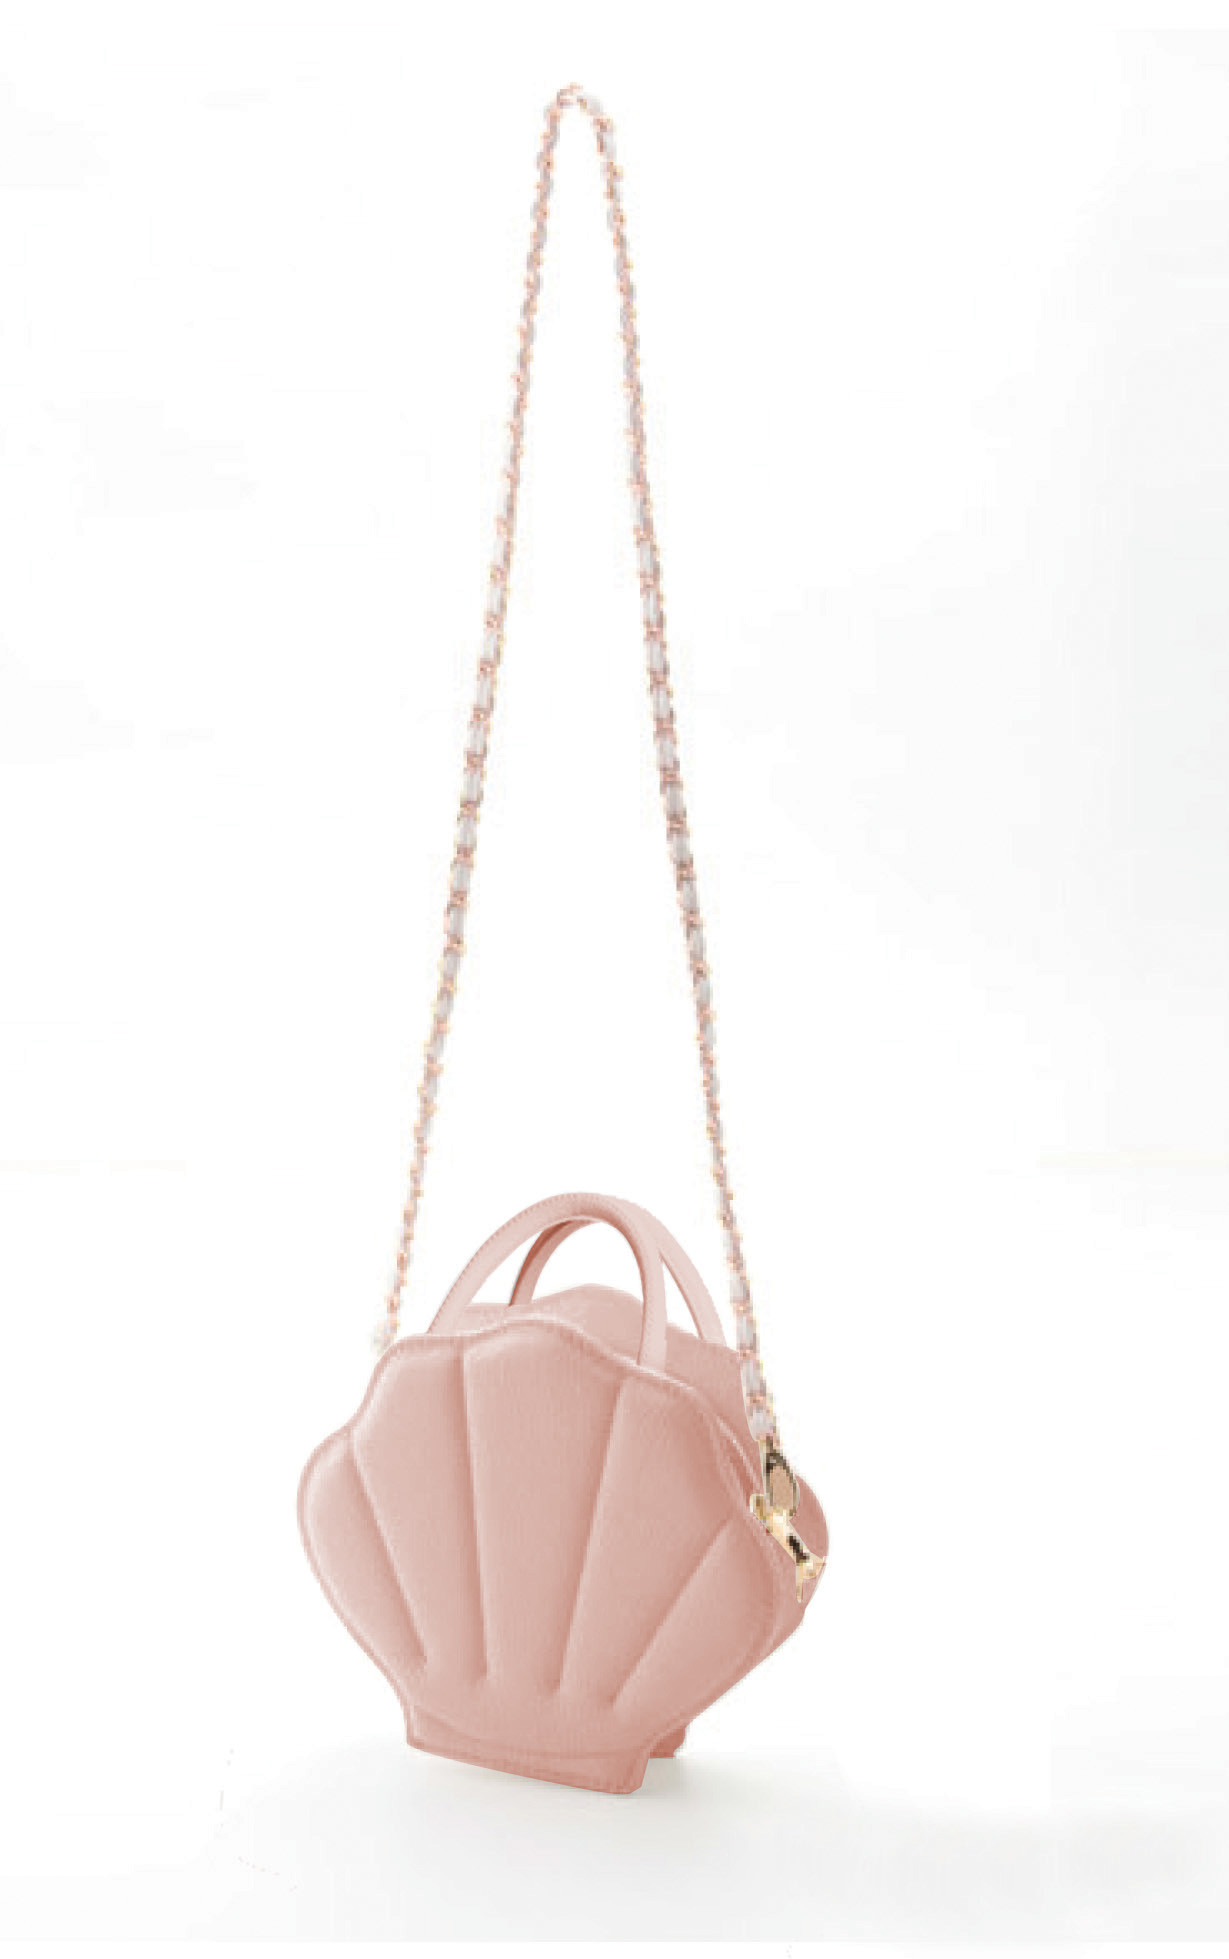 ad1ffb56020 Mermaid Whimsy Sea Shell Purse in Light Pink   Sincerely Sweet Boutique